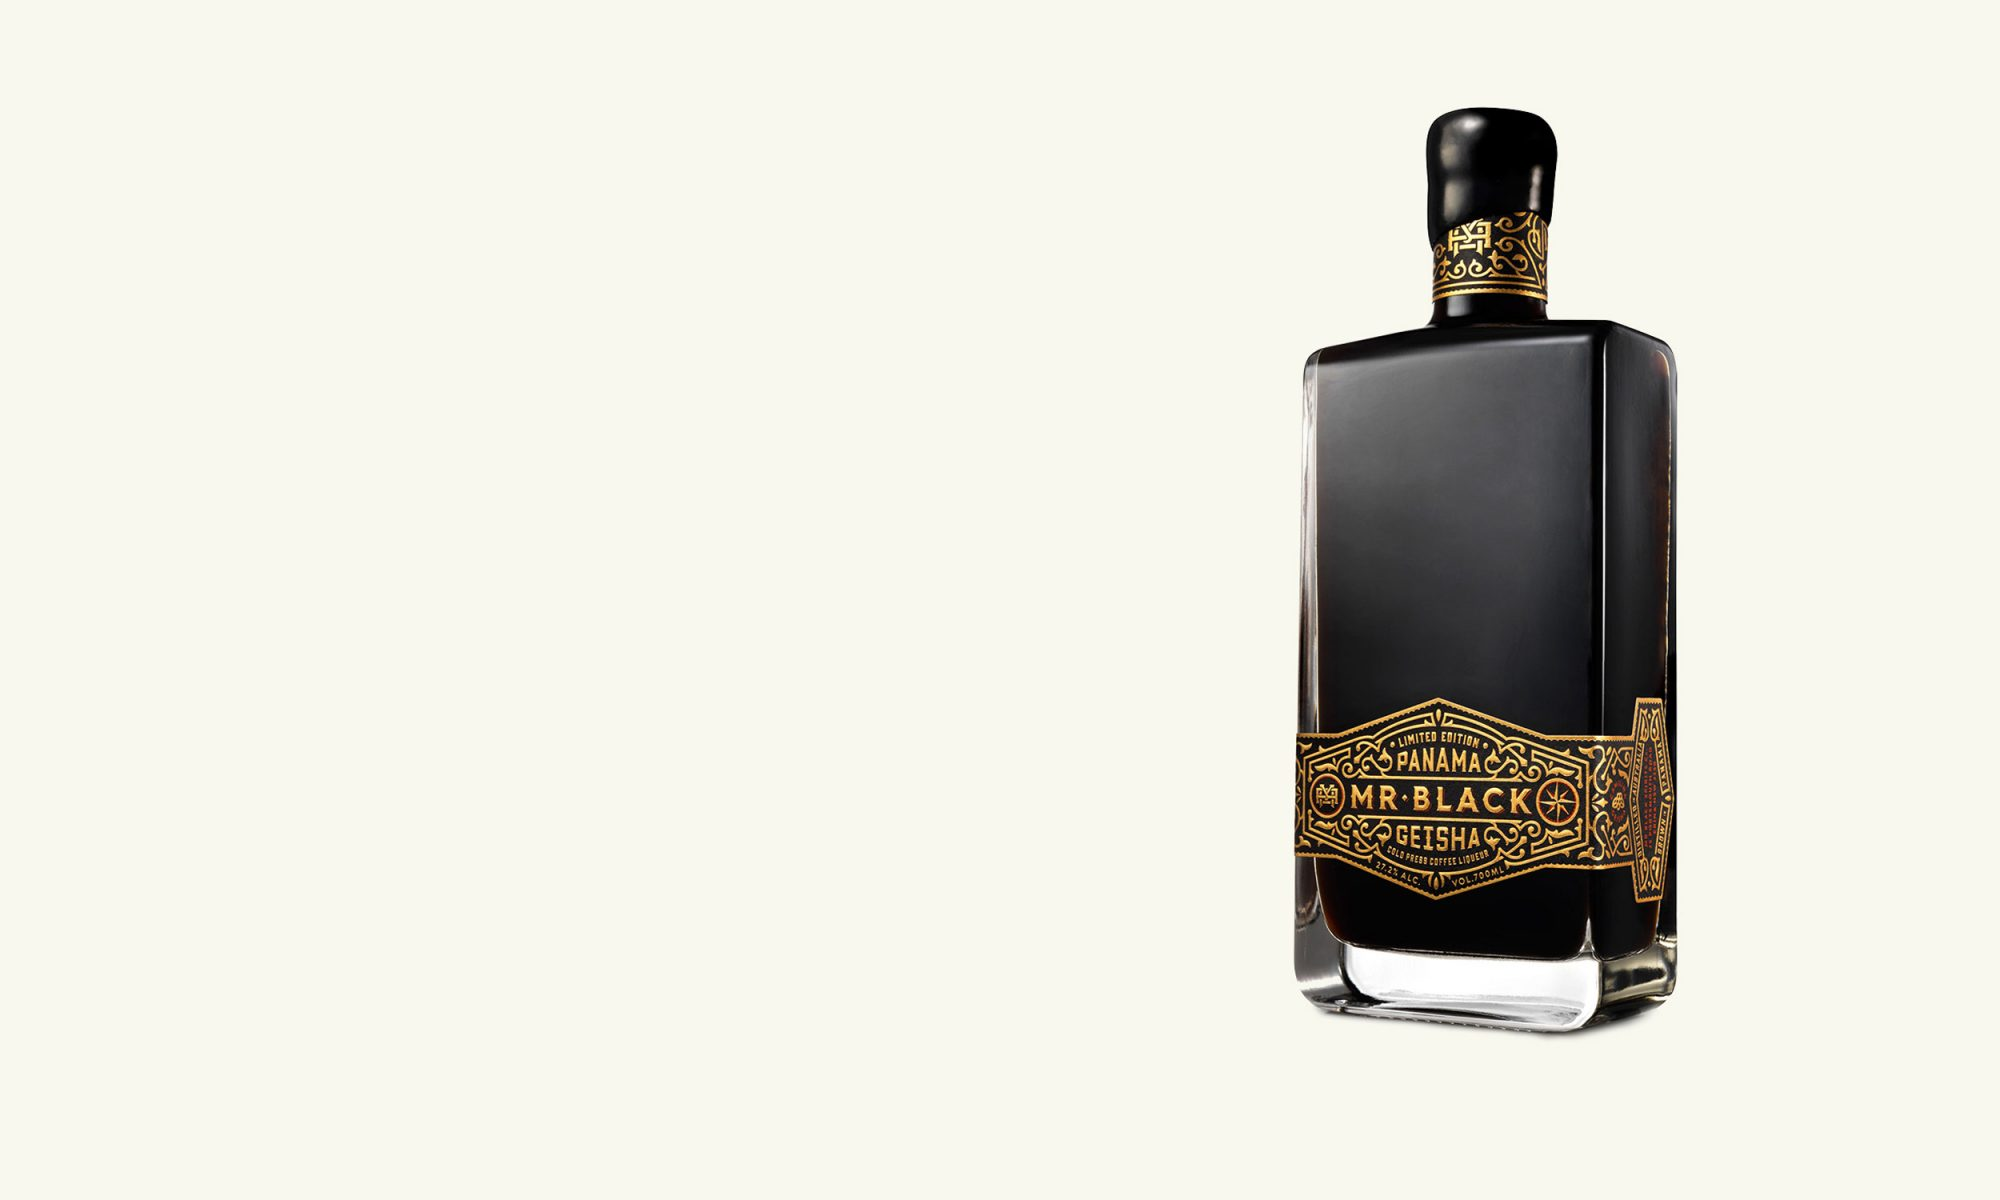 EC: You Have to Take a Test to Buy This $145 Bottle of Coffee Liqueur